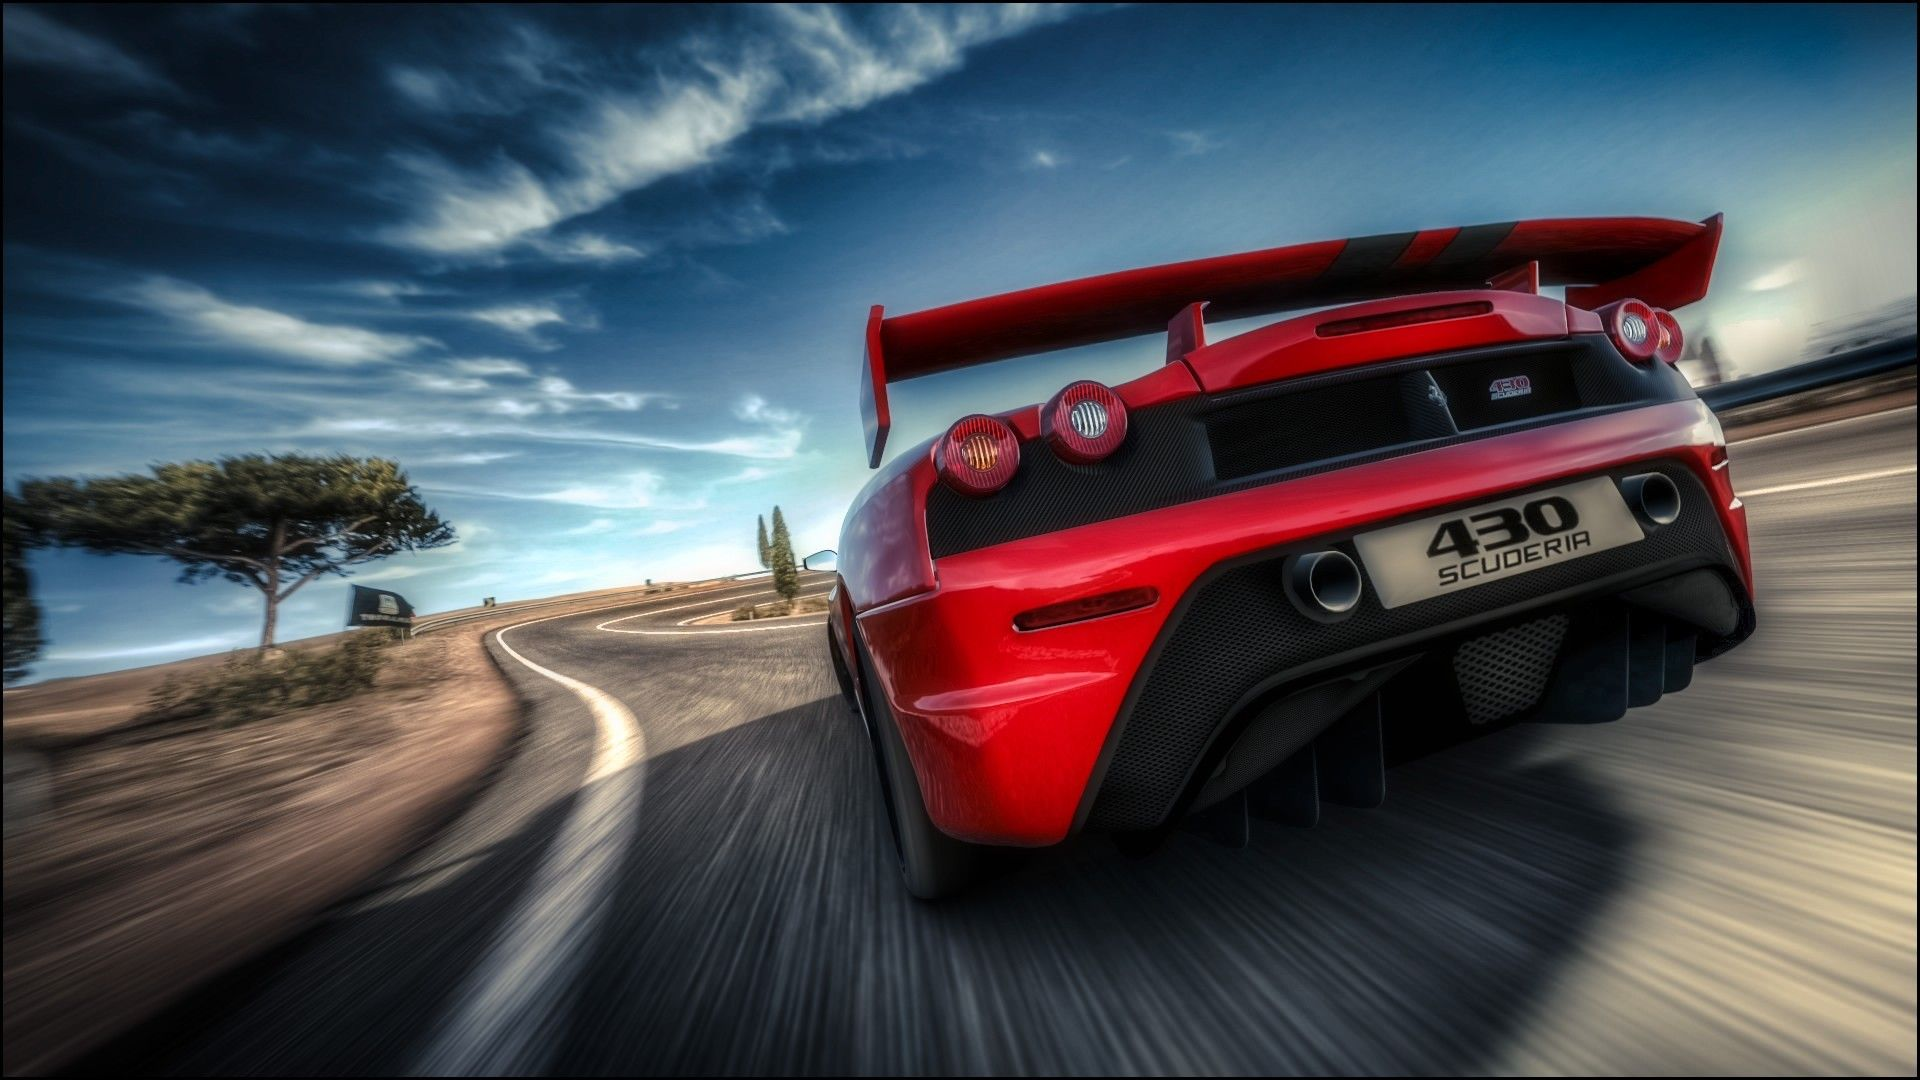 Download hd wallpapers of 30351car road motion blur